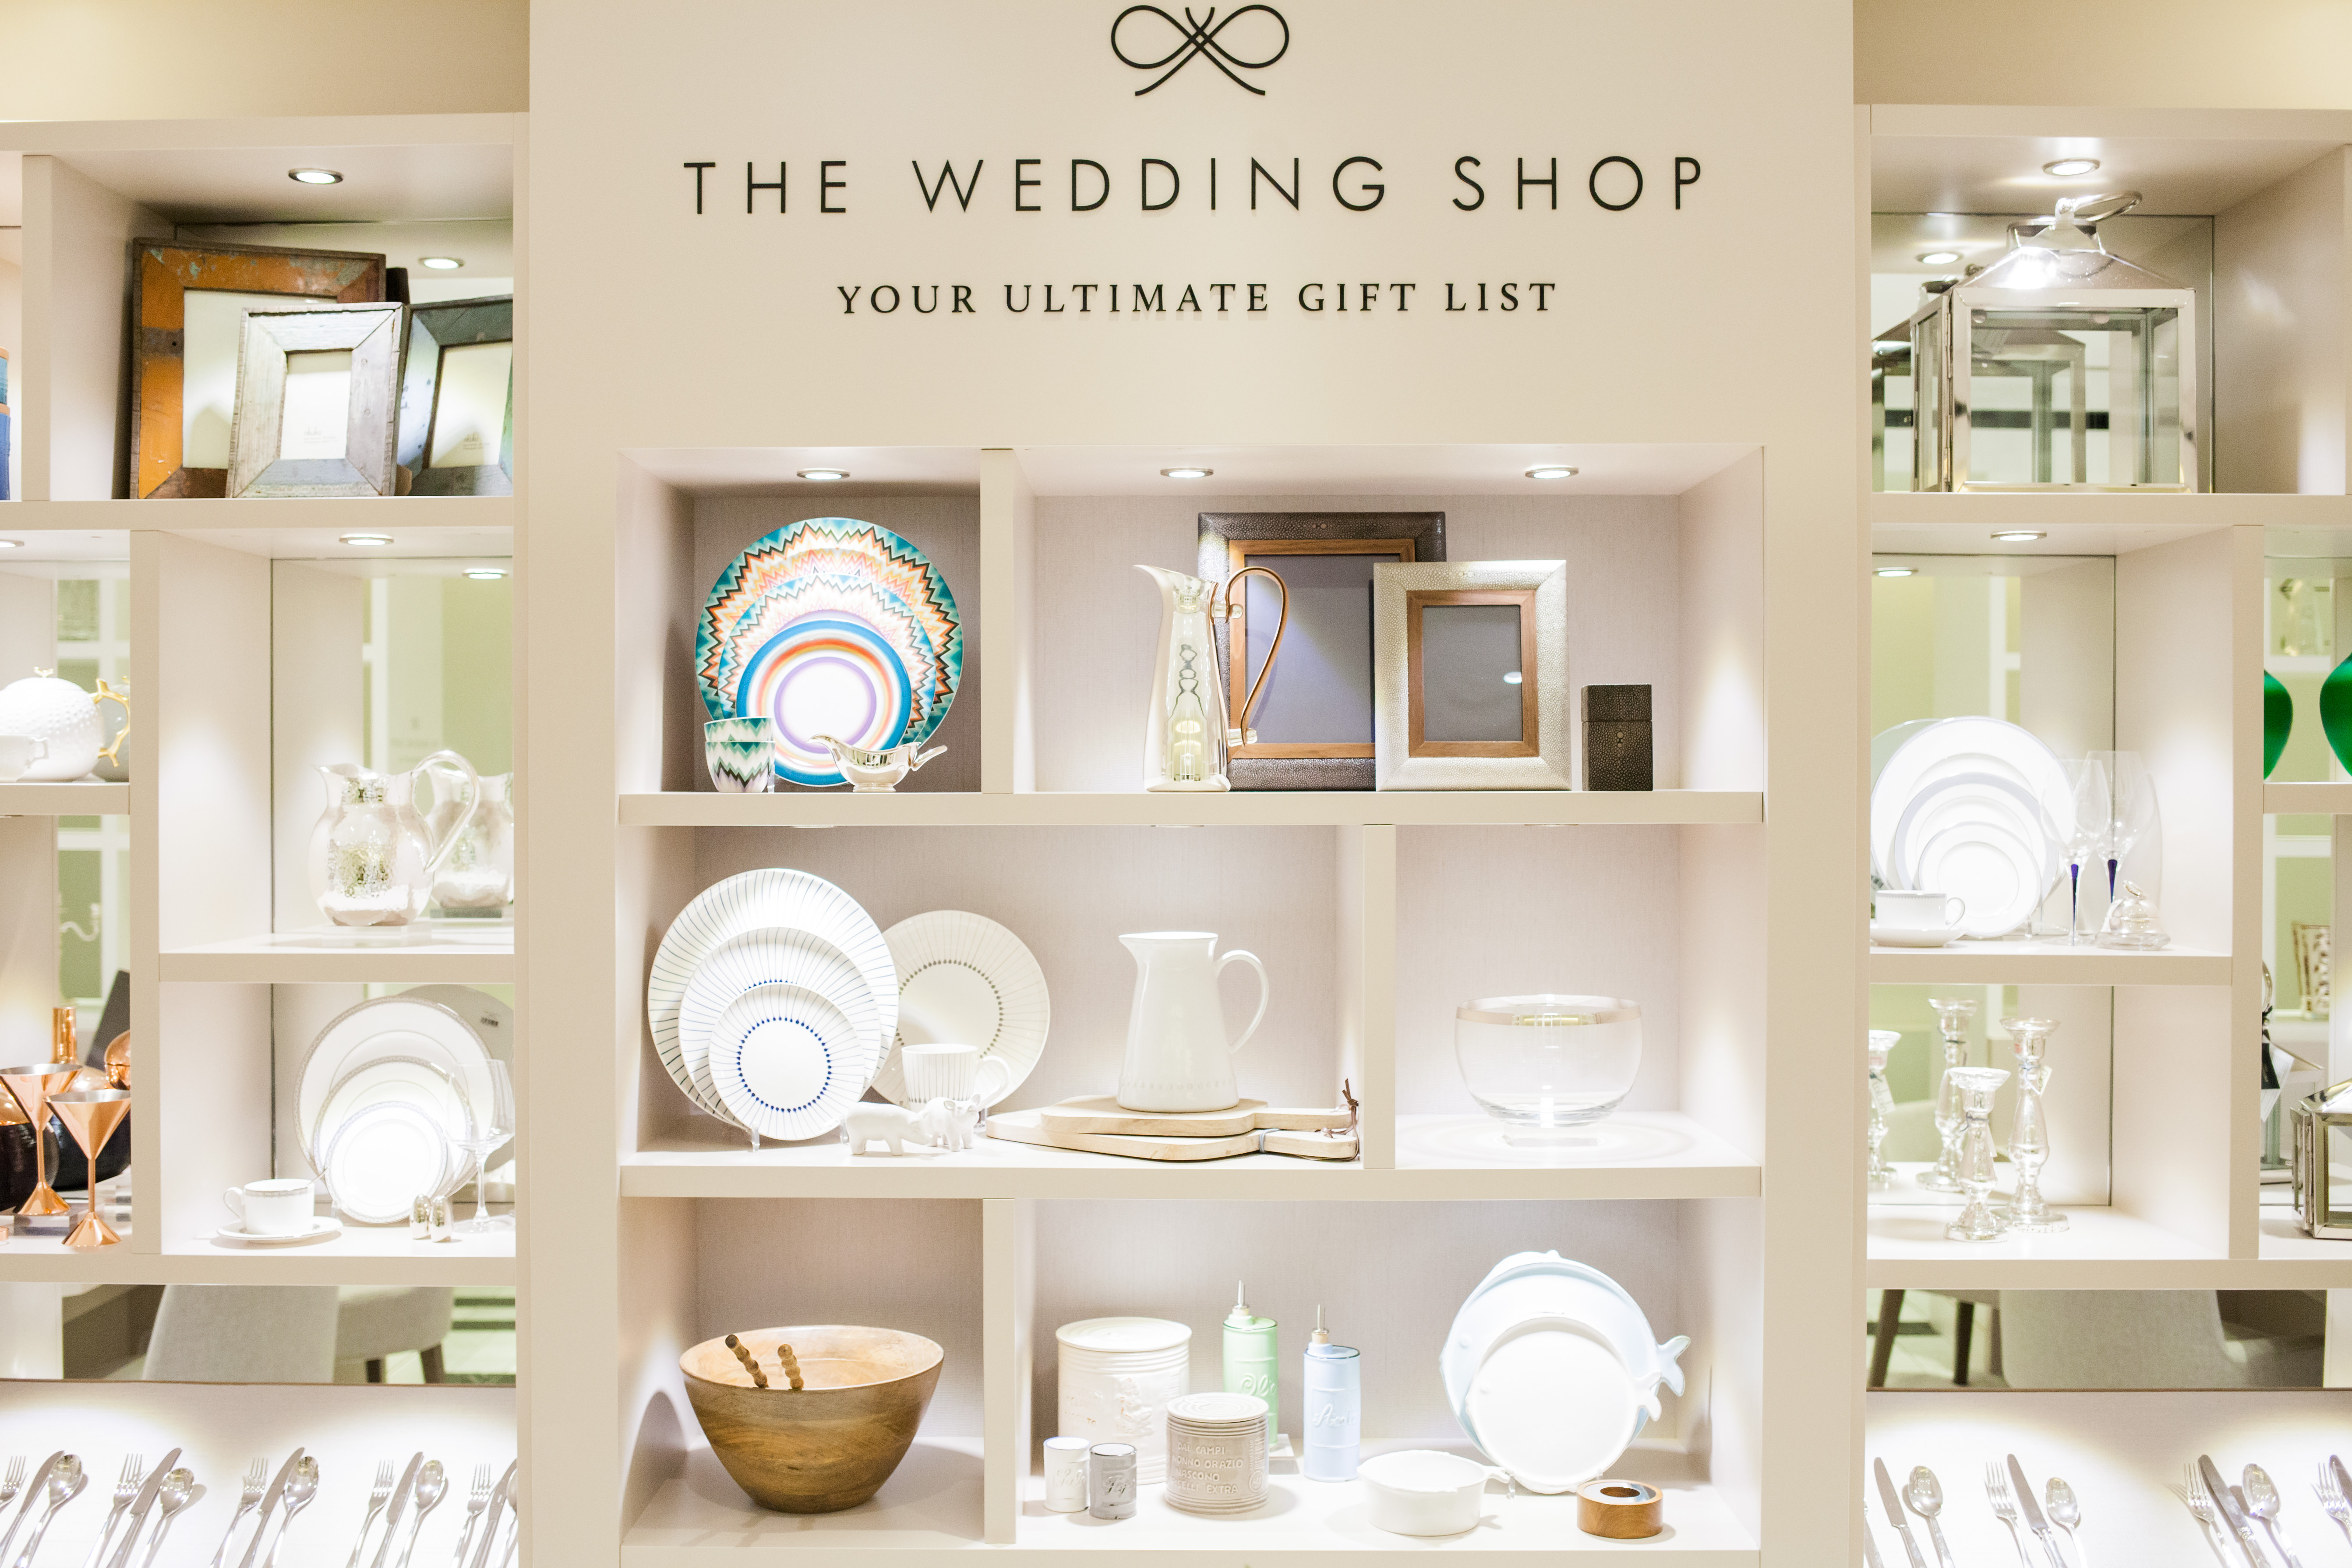 ... Wedding Shop The Wedding Shop at Selfridges Luxury Wedding Gift List